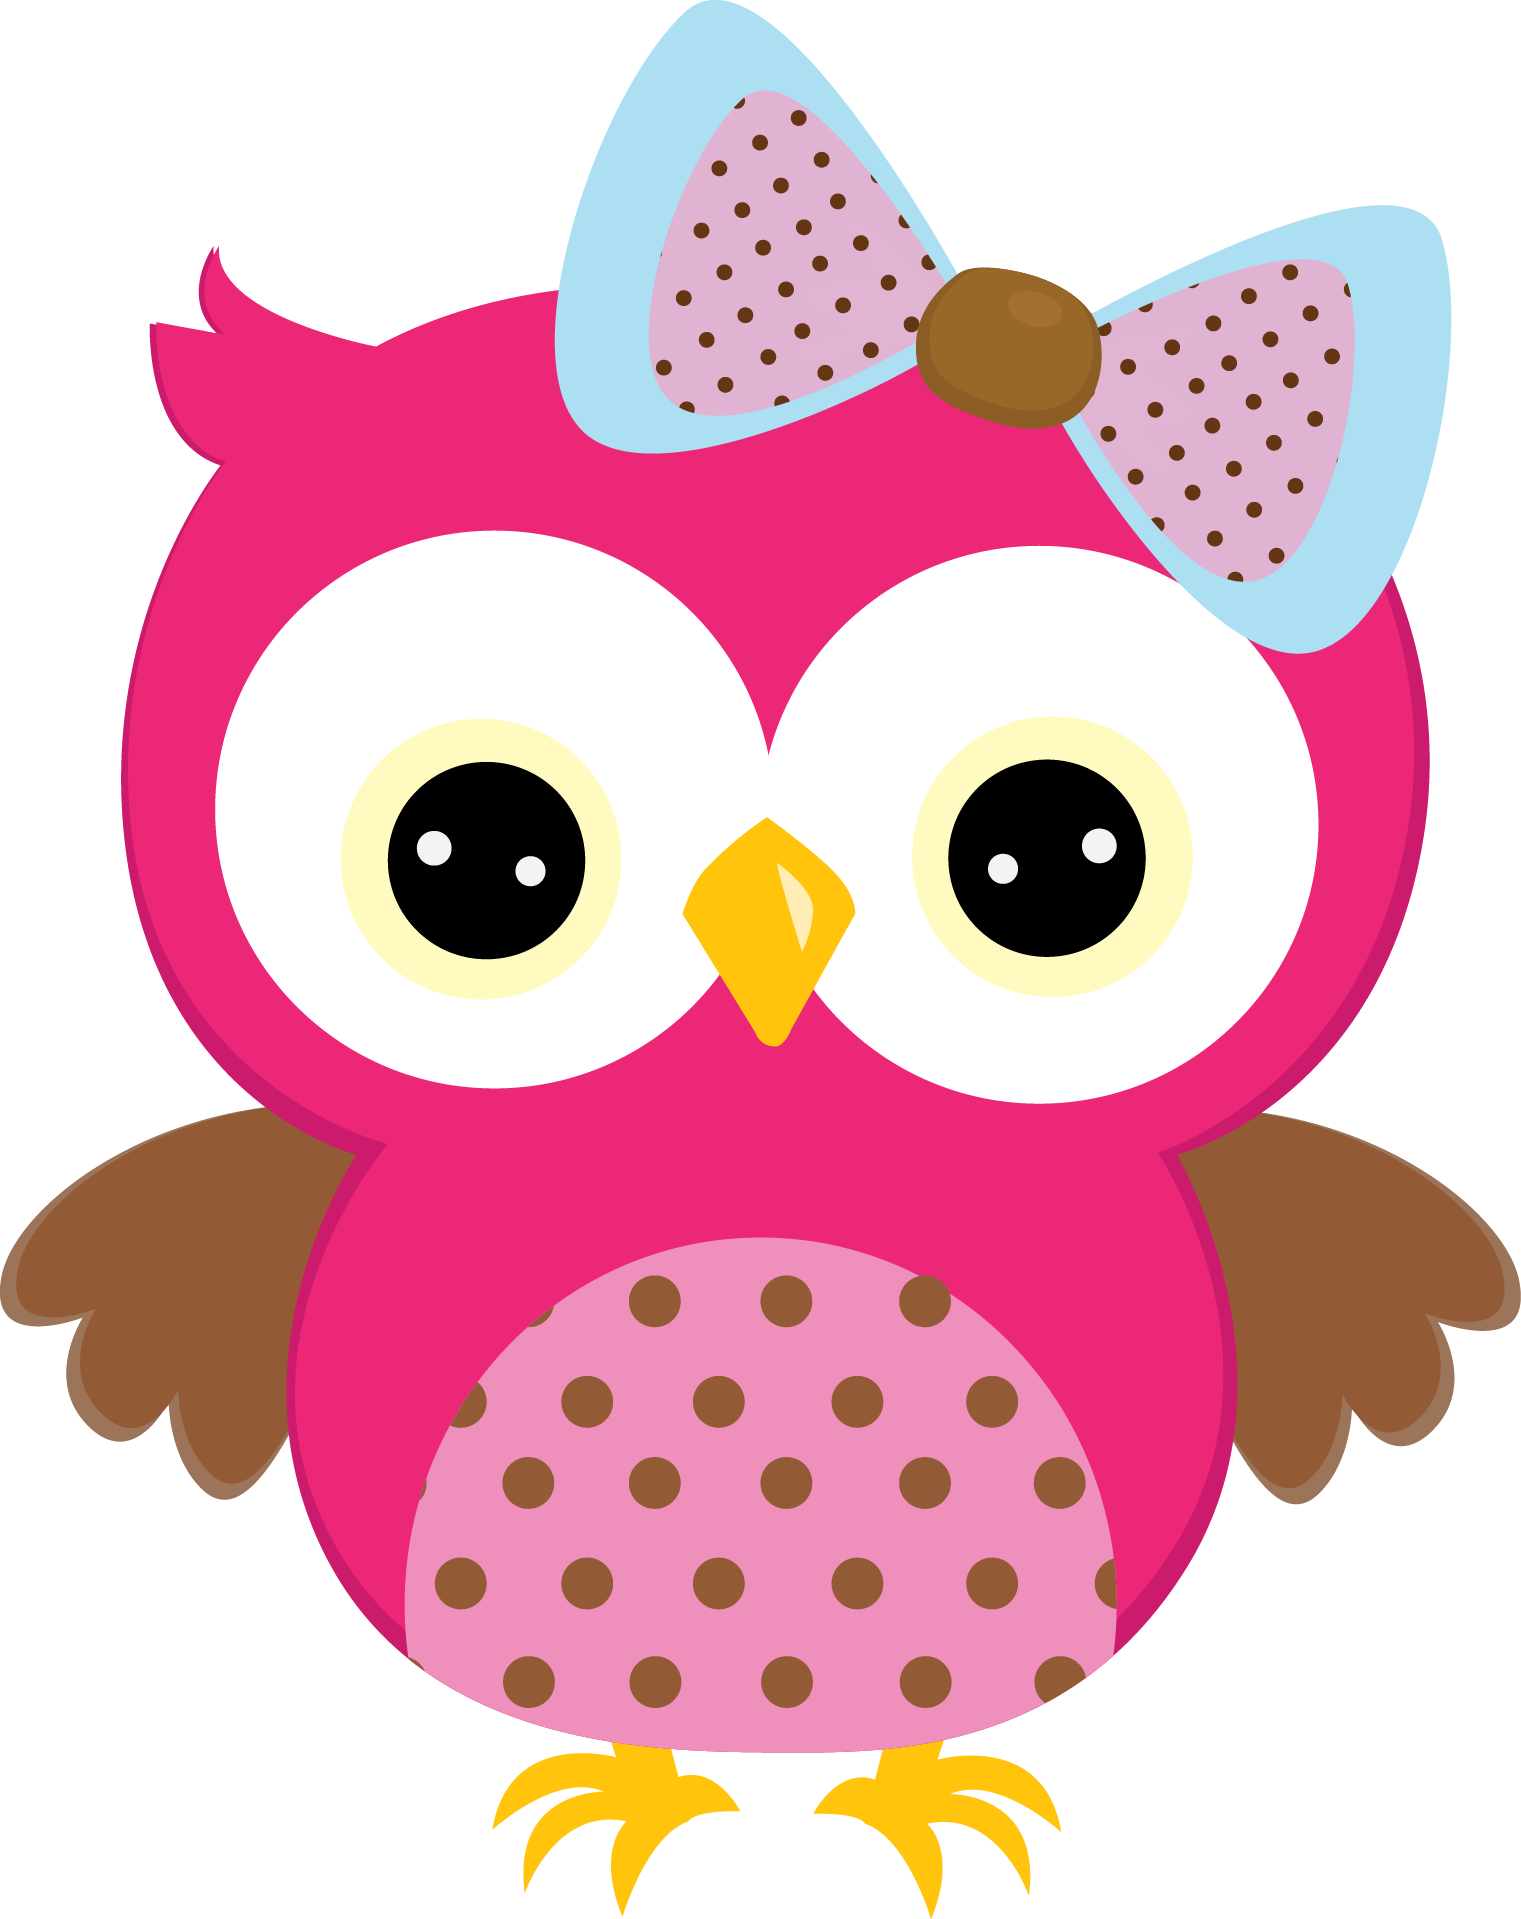 Clipart of owl with apple vector download owl pink png - Buscar con Google | buhos | Pinterest | Owl, Clip art ... vector download